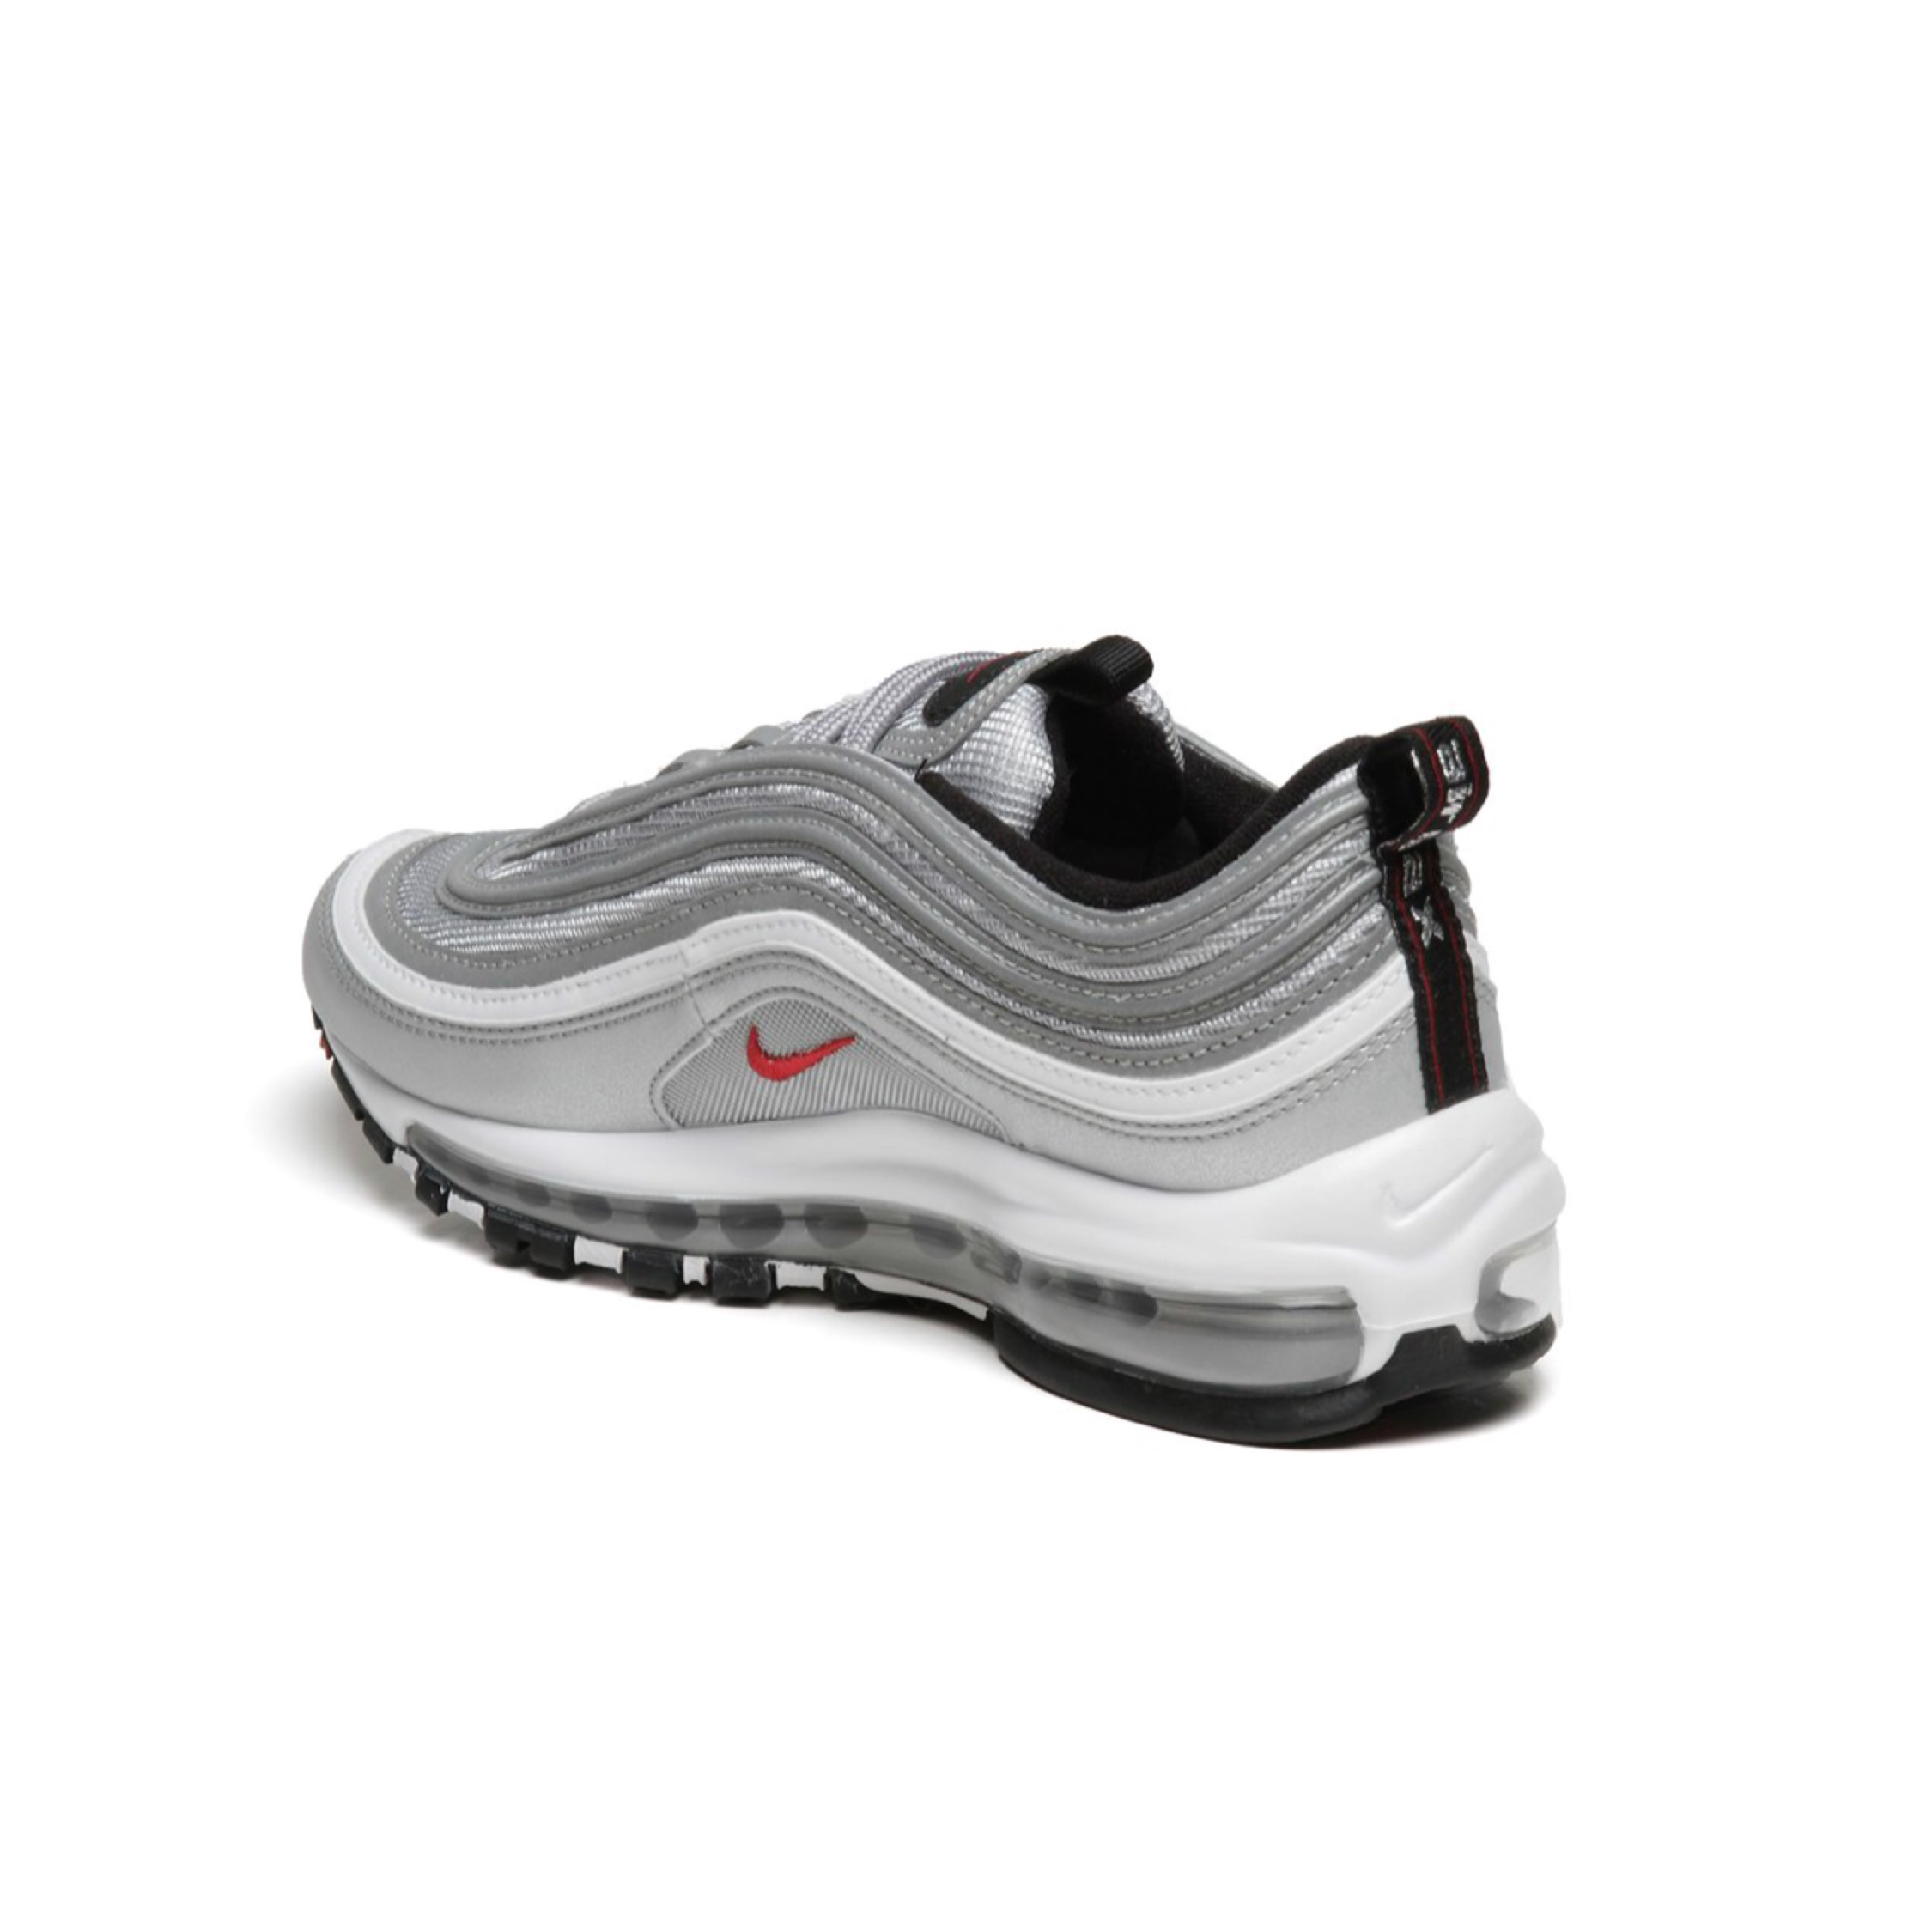 huge selection of 27be5 2a864 Nike Air Max 97 Silver Bullet Qs Gs Eu35.5